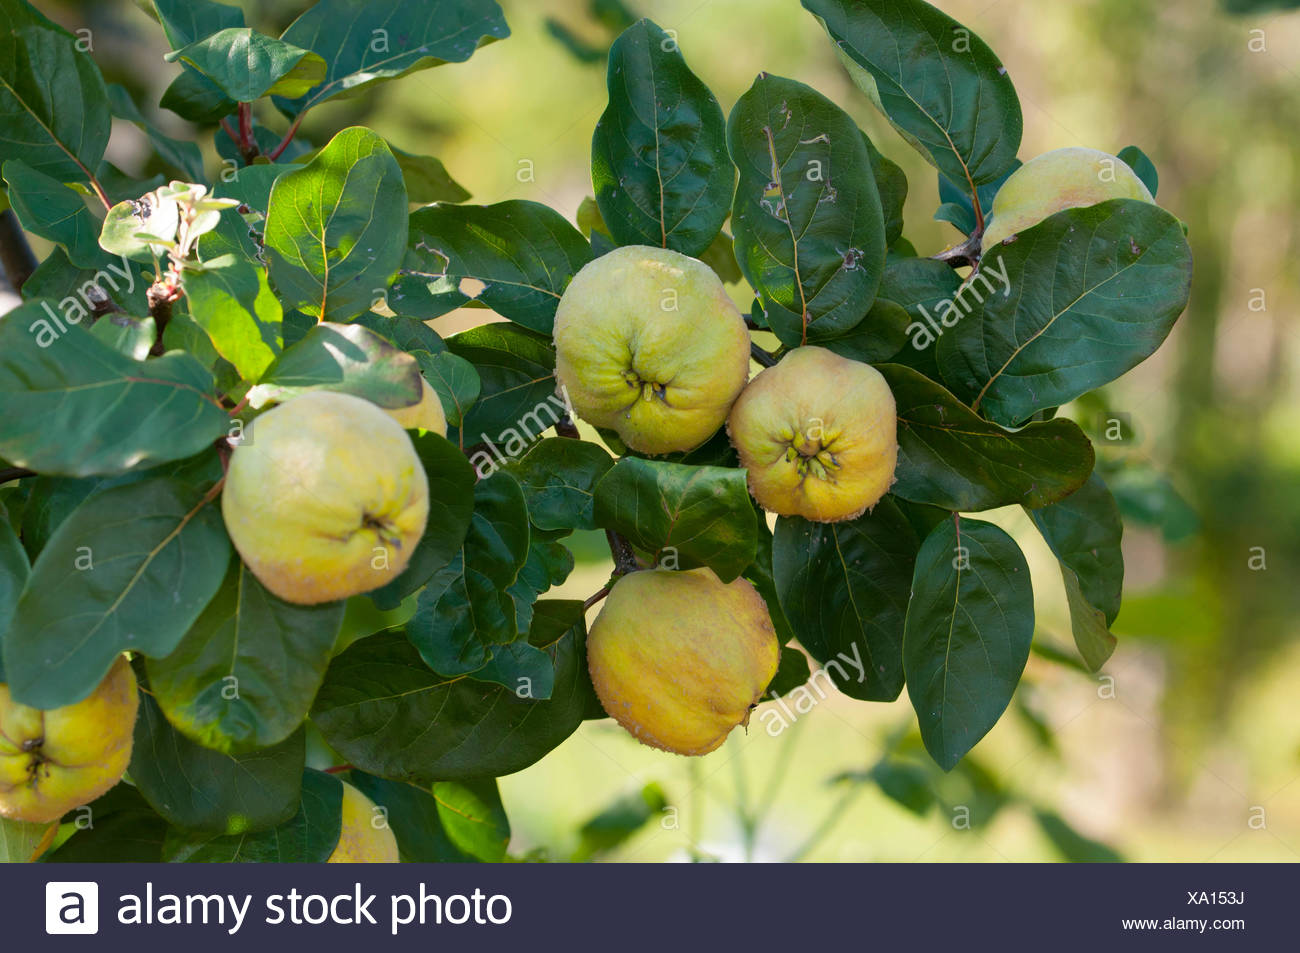 Quinces (Cydonia oblonga, Pyrinae, Rosaceae) in branch - Stock Image